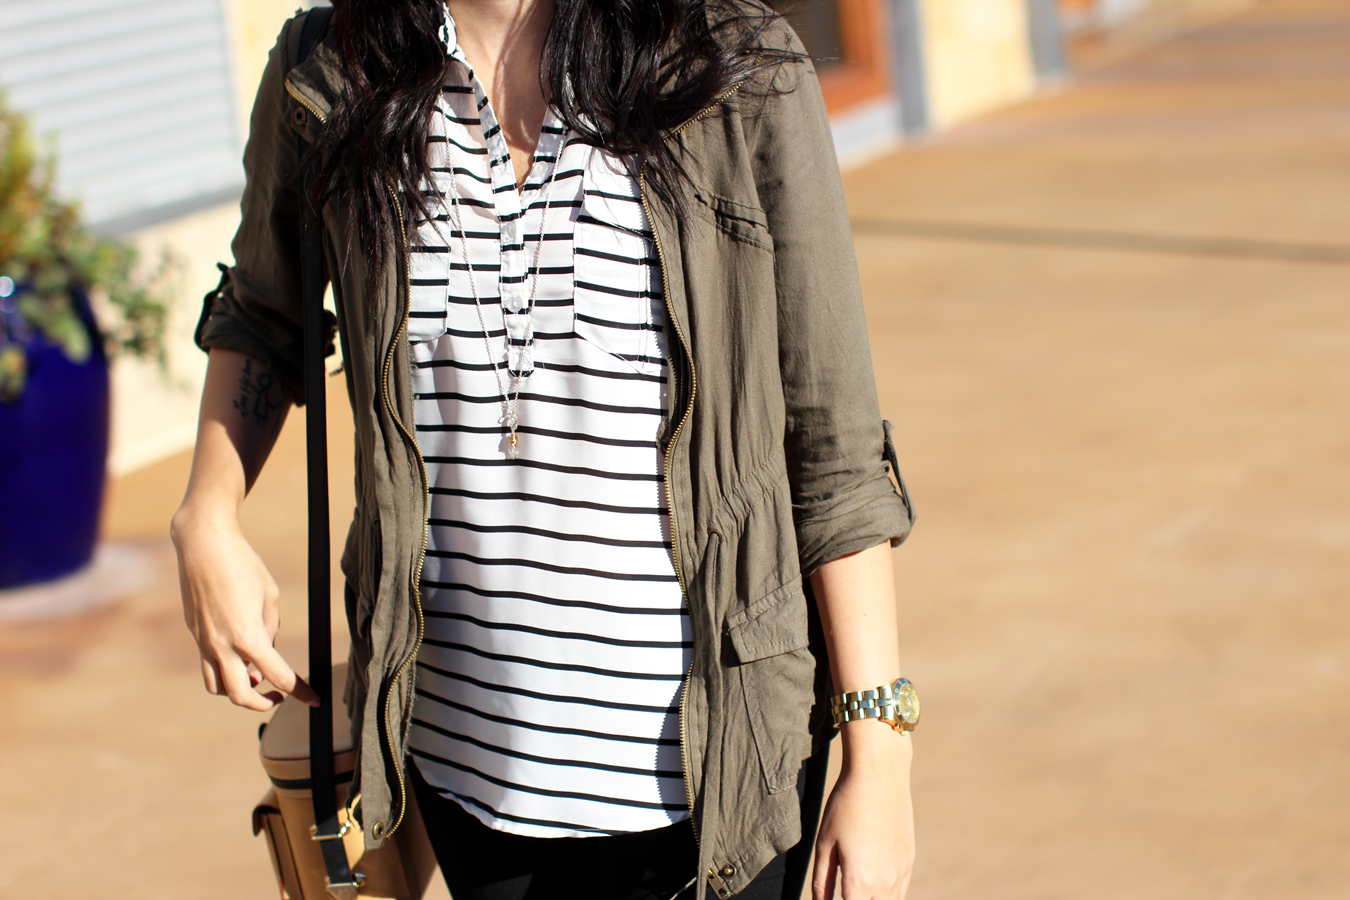 FTT-CARGO-JACKET-SHOPPING-HILL-COUNTRY-GALLERIA-SKINNY-JEANS-STRIPES-5